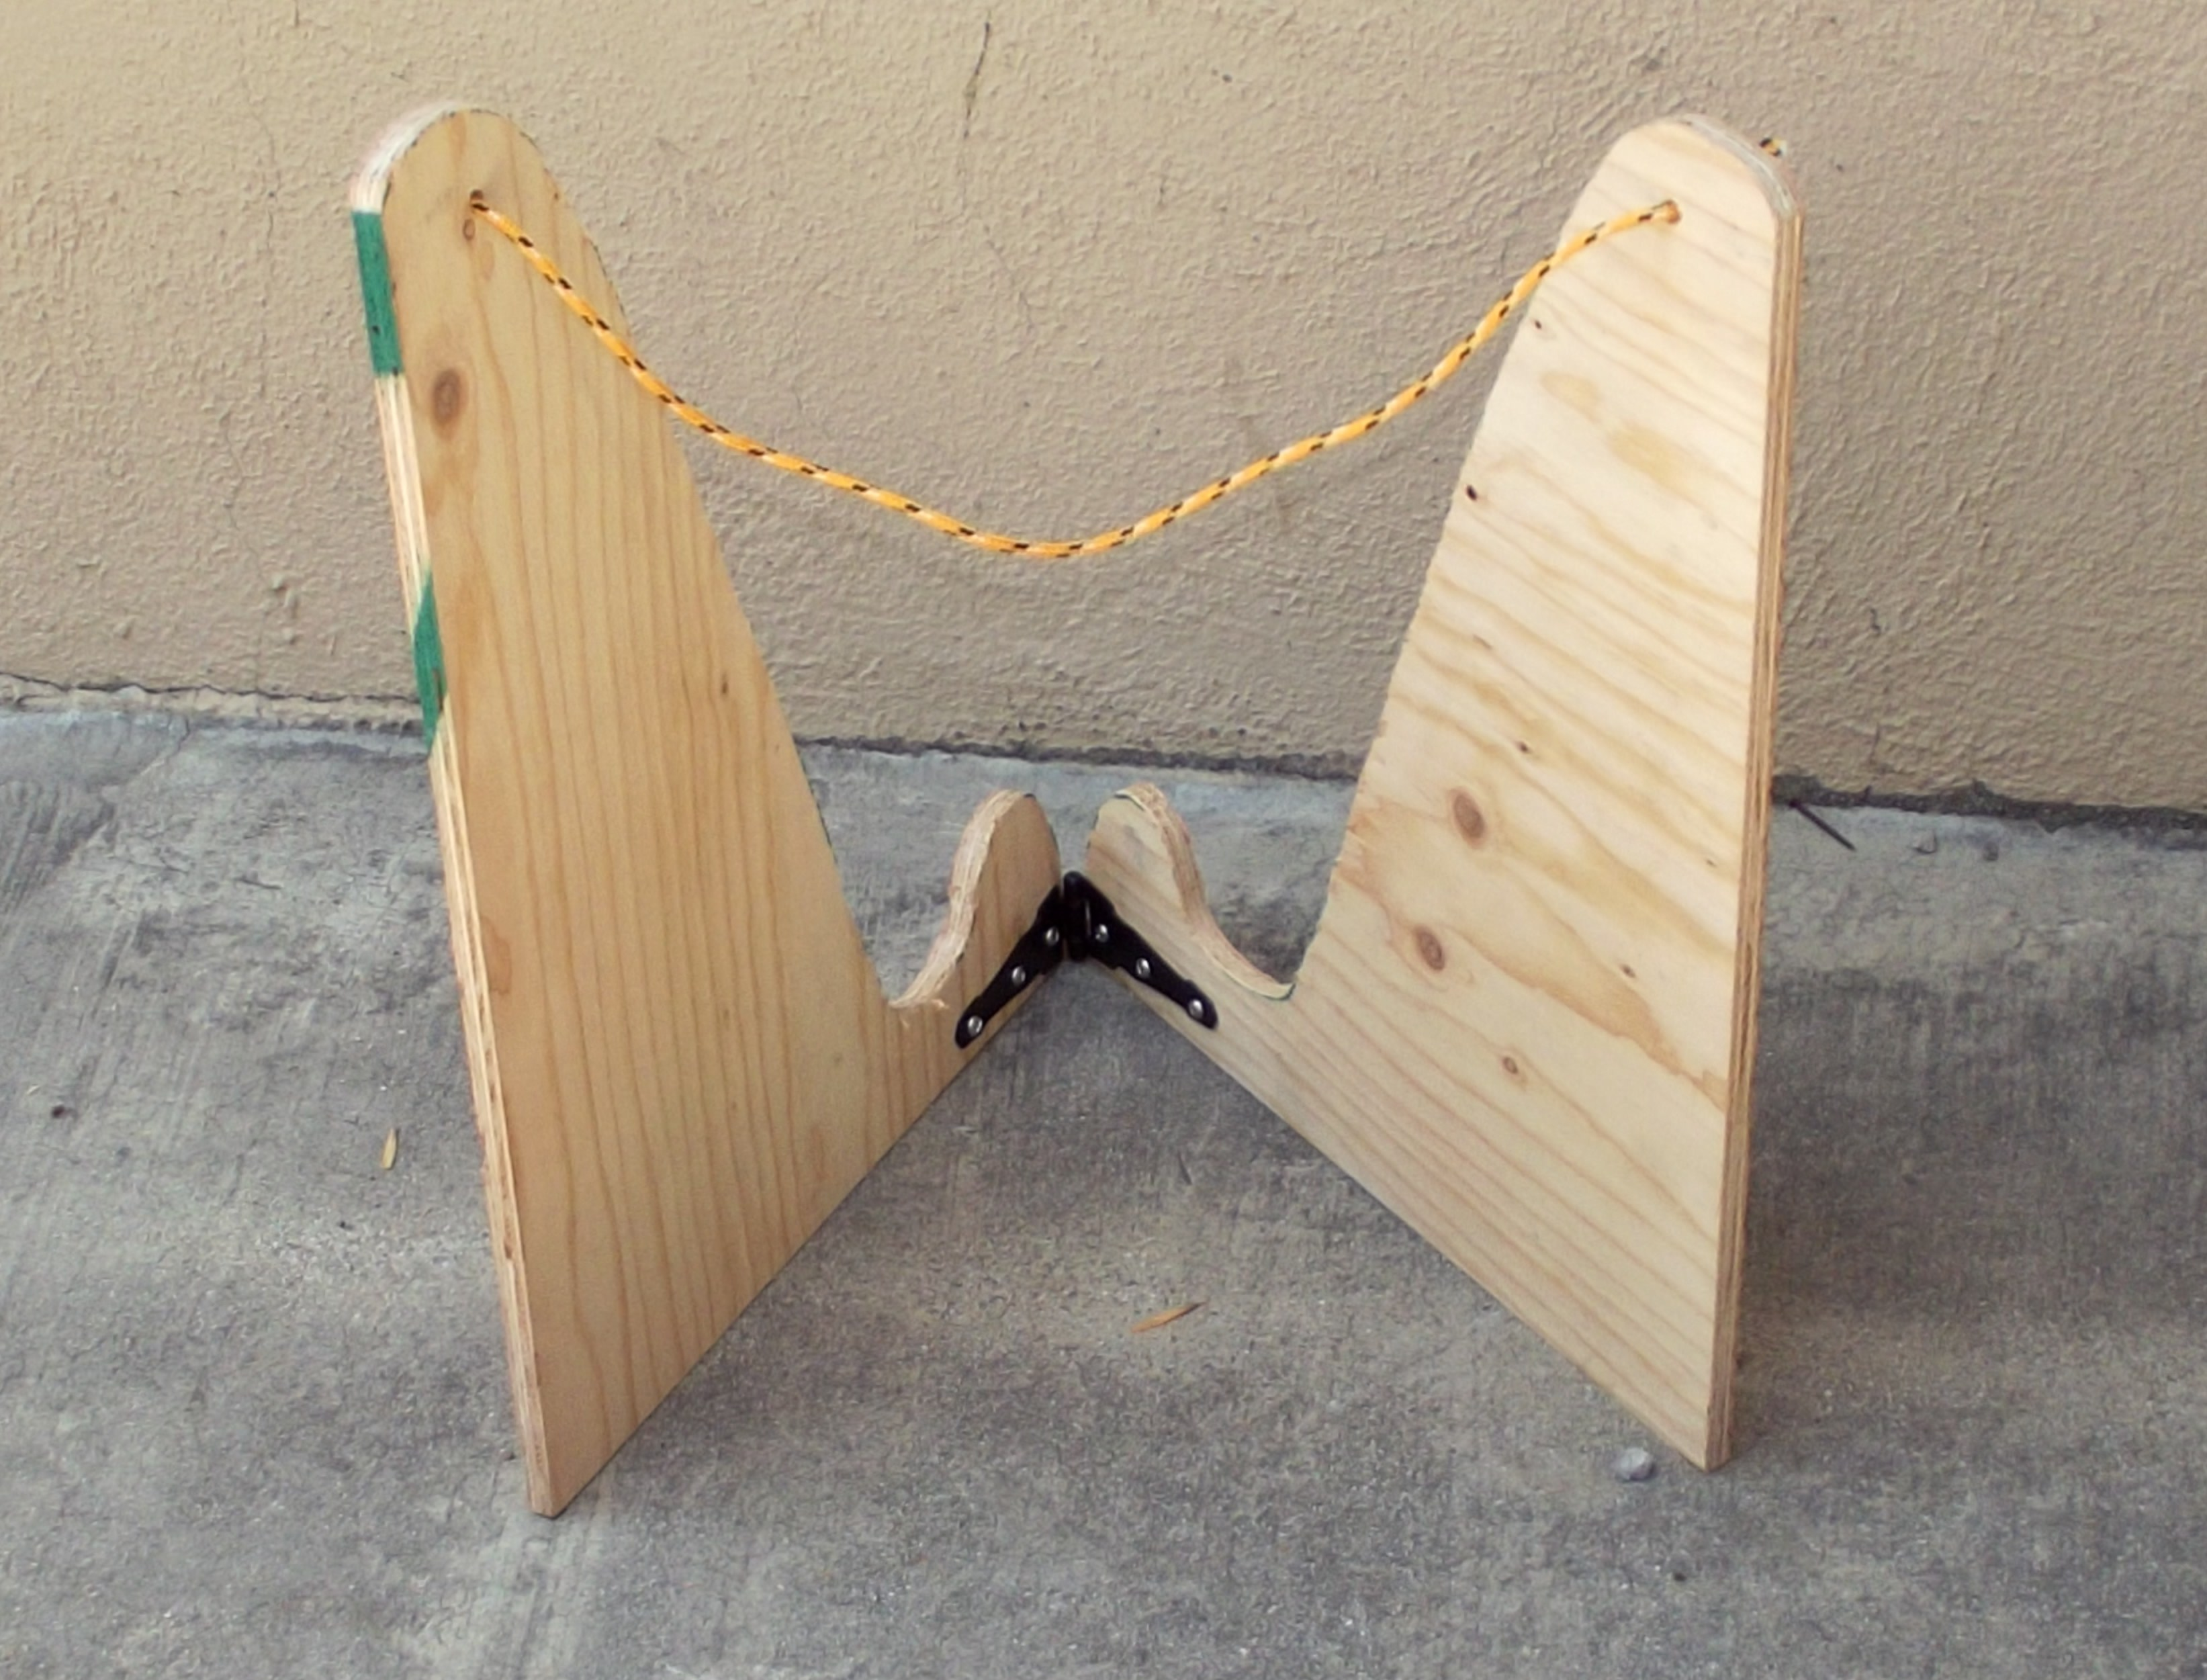 Picture of Hinge & Rope Assembly